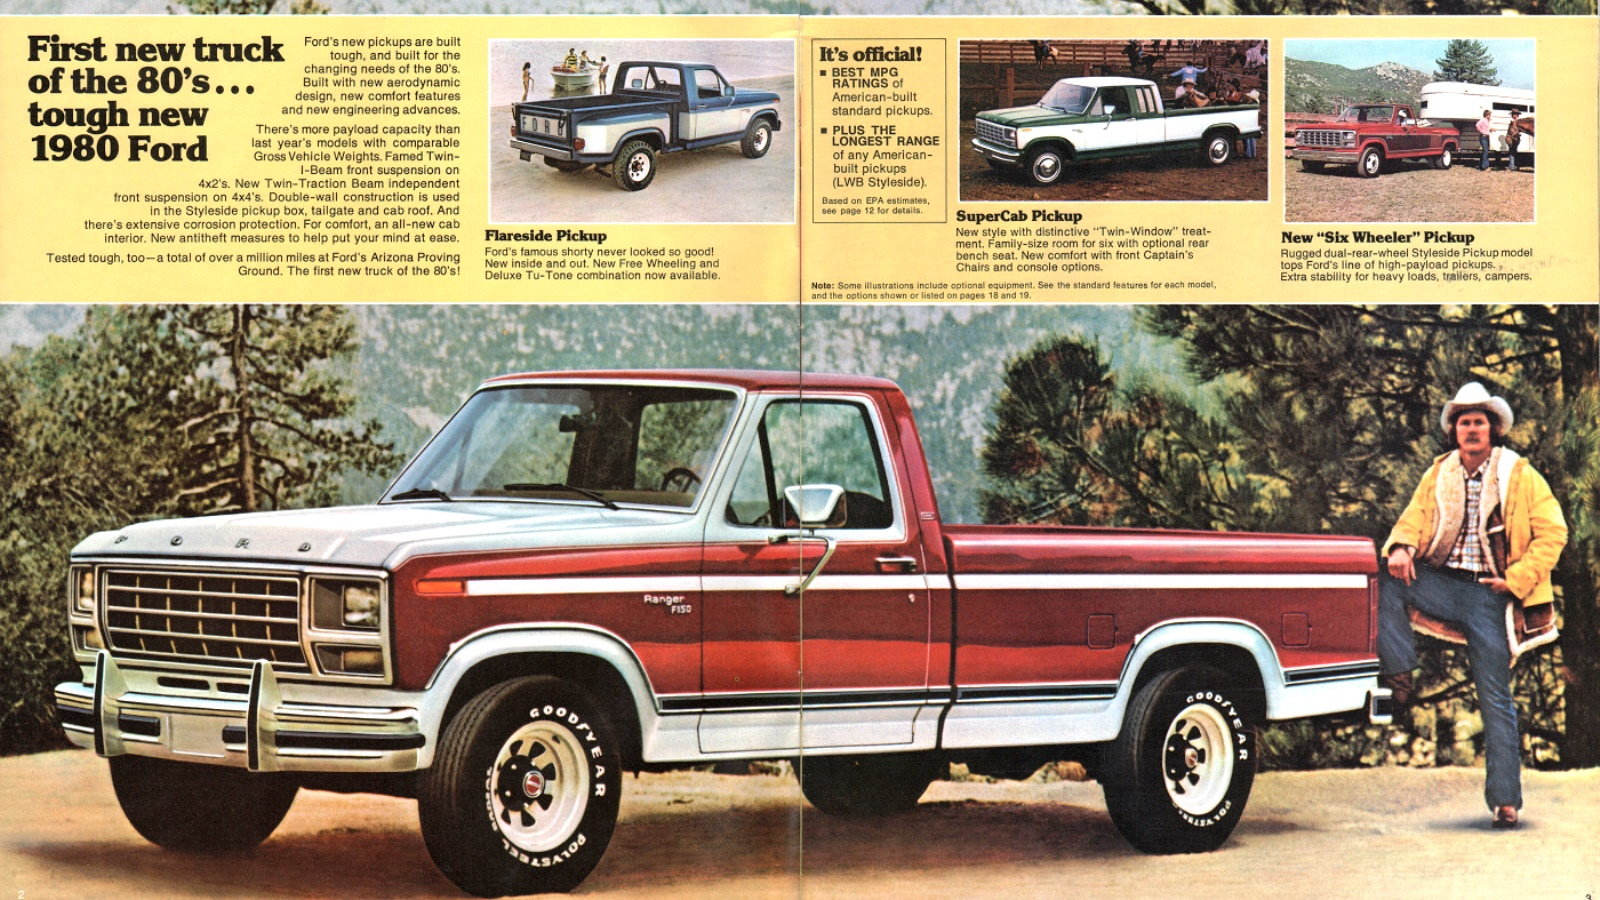 1980 Ford F-100/F-150 (300ci/manual 3sp) - 17 mpg